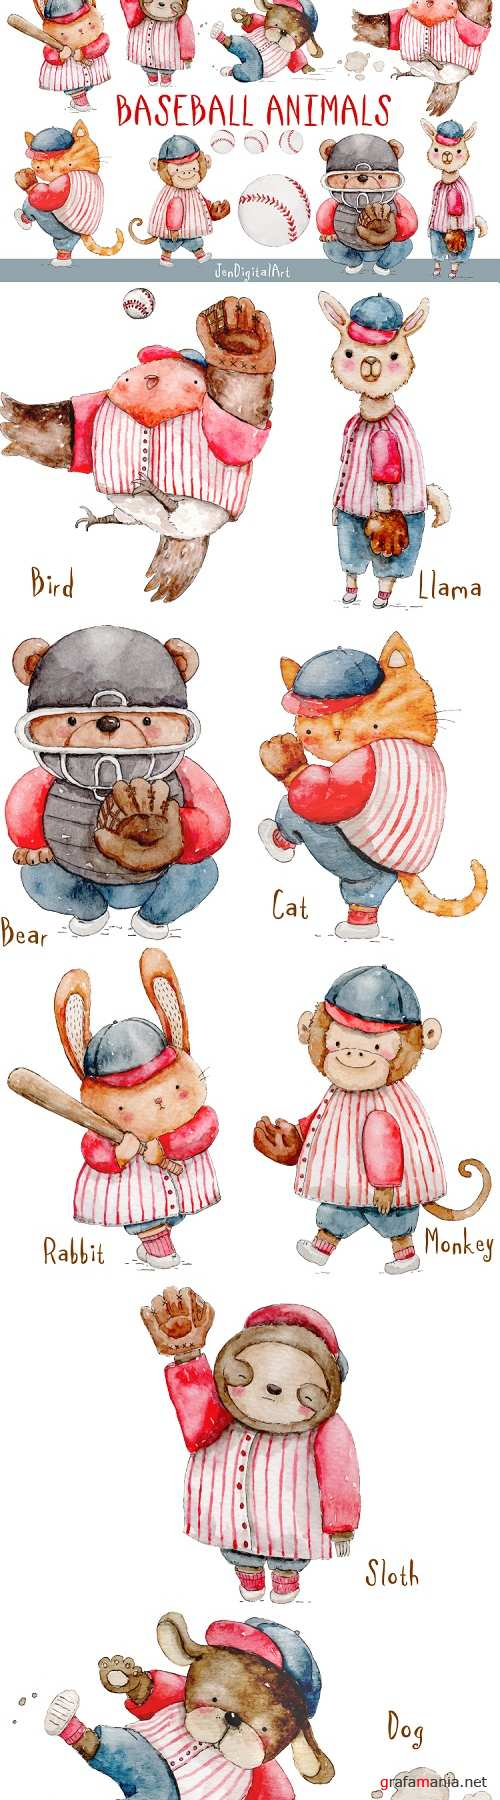 Watercolor Baseball Animals - 270359